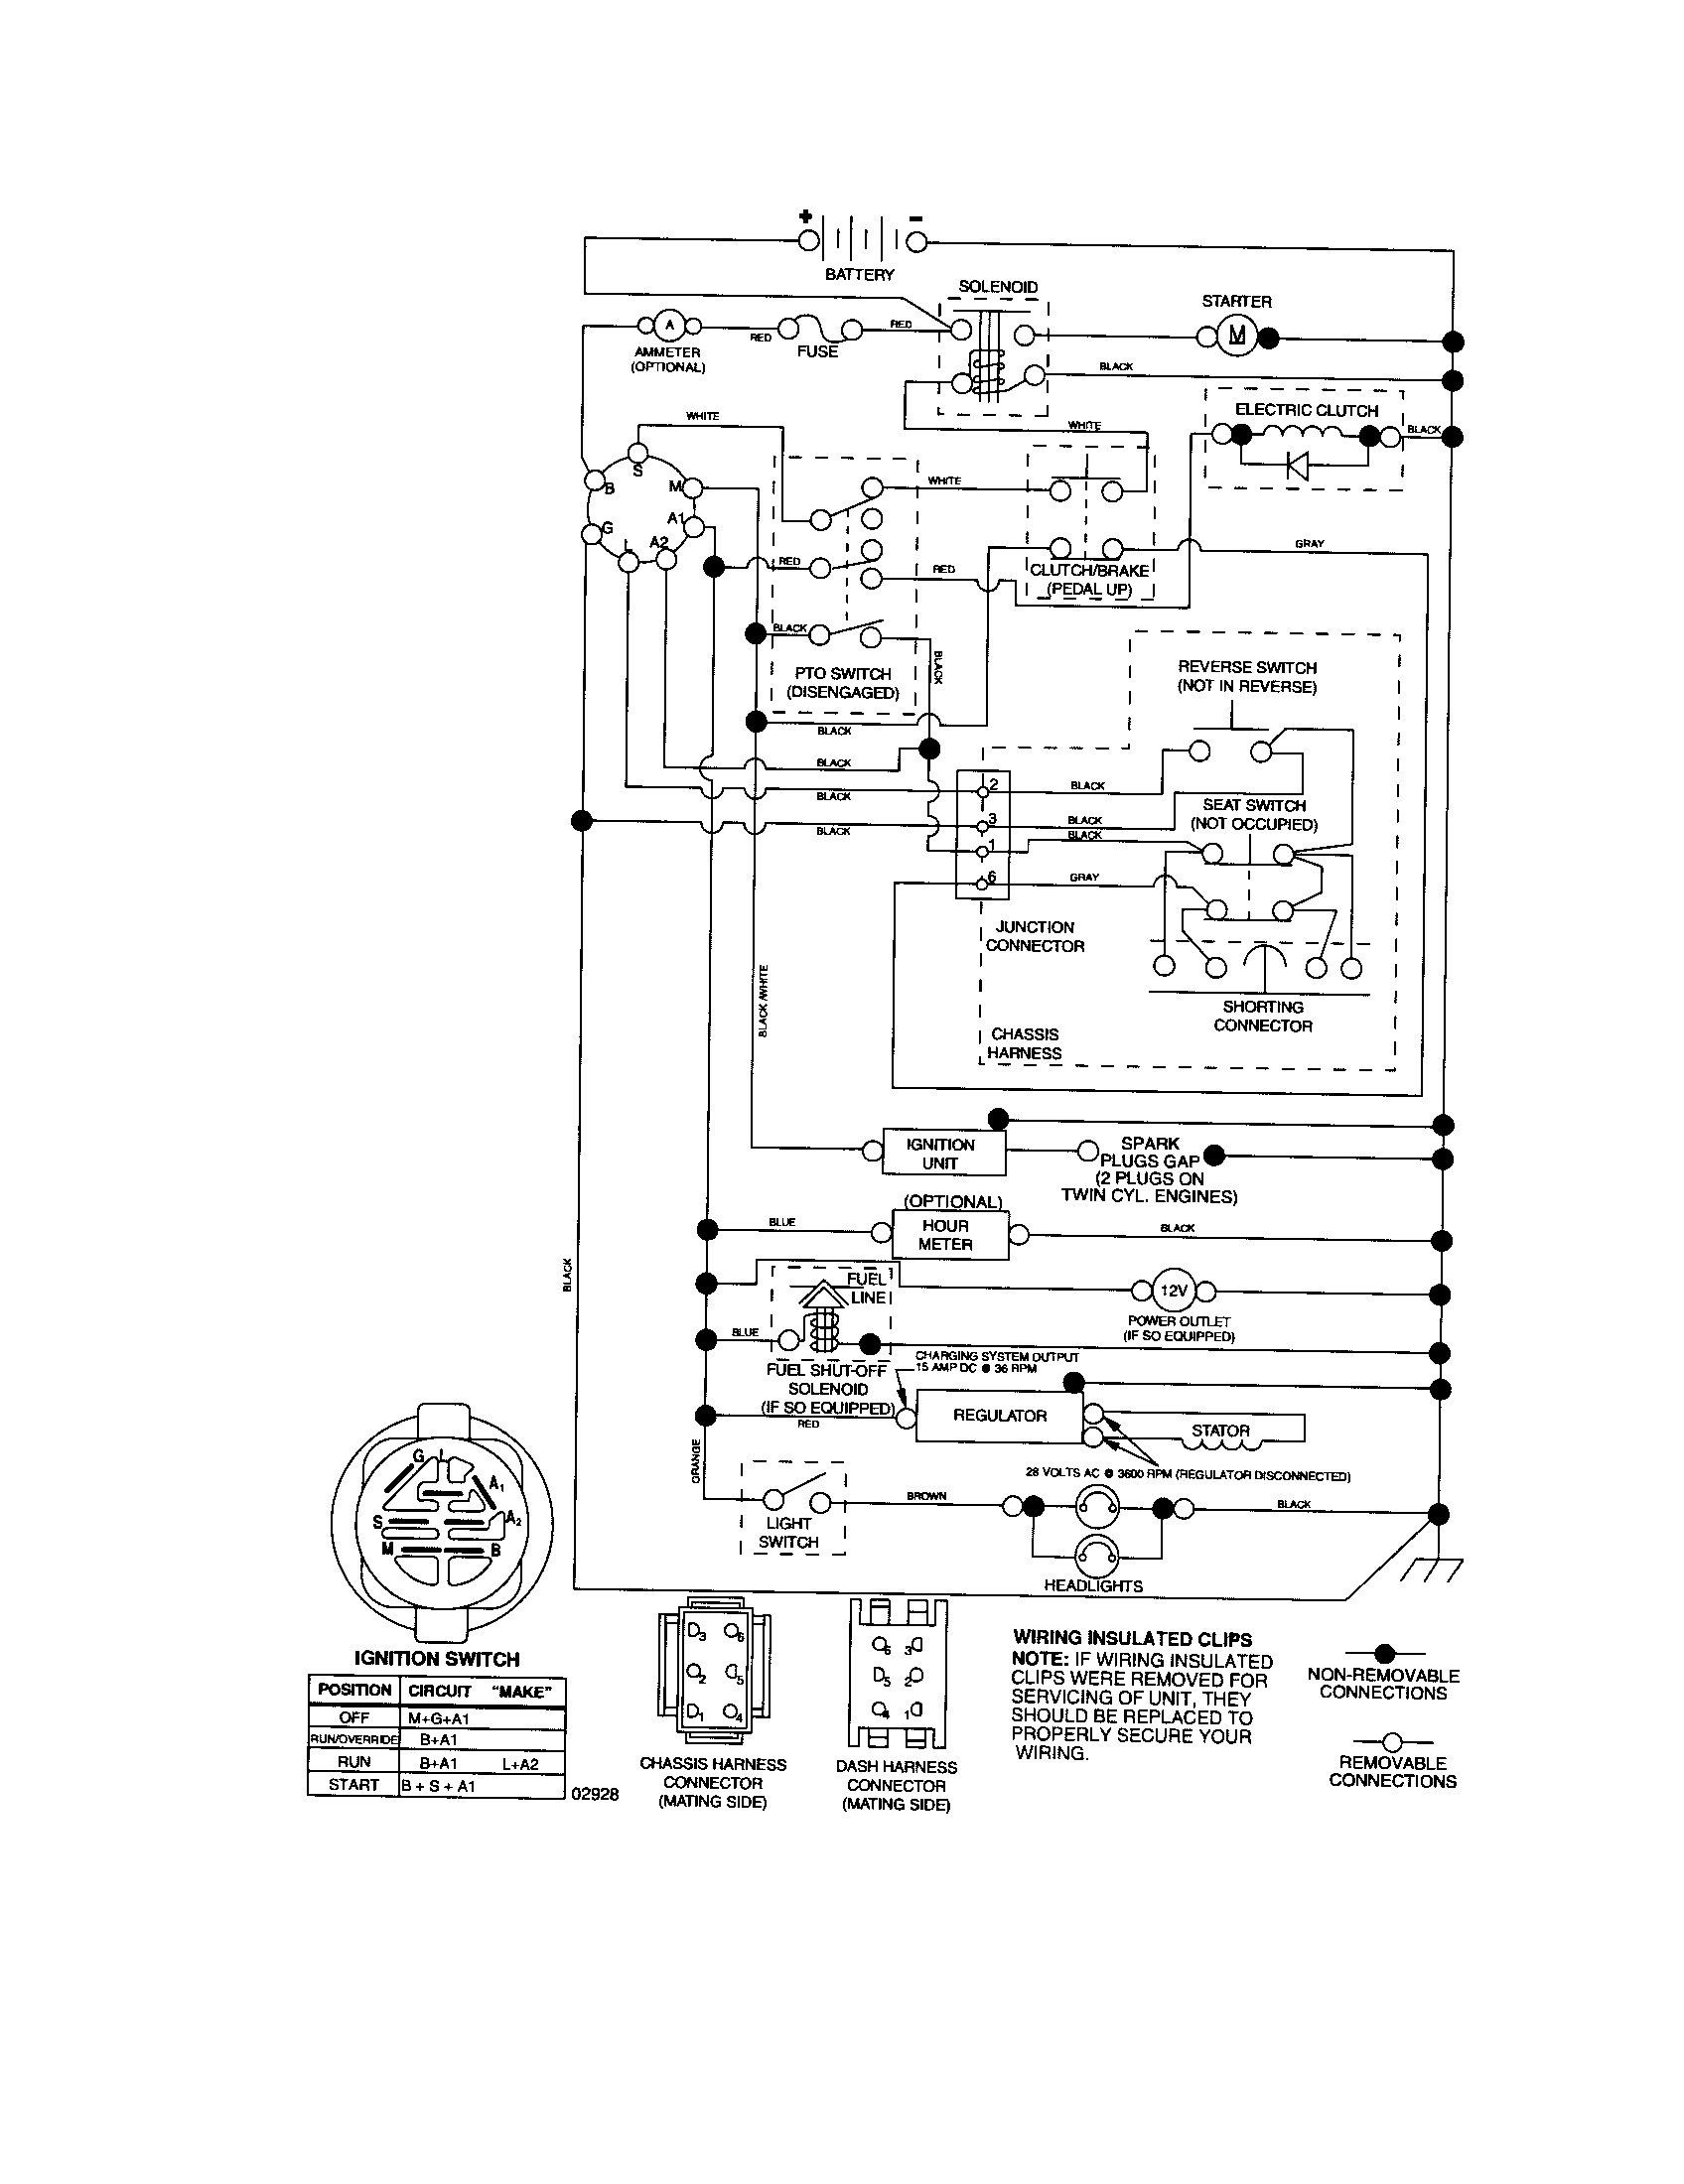 medium resolution of craftsman lawn tractor model 917276904 schematic diagram tractor old ford tractor clutch diagram printable wiring diagram schematic